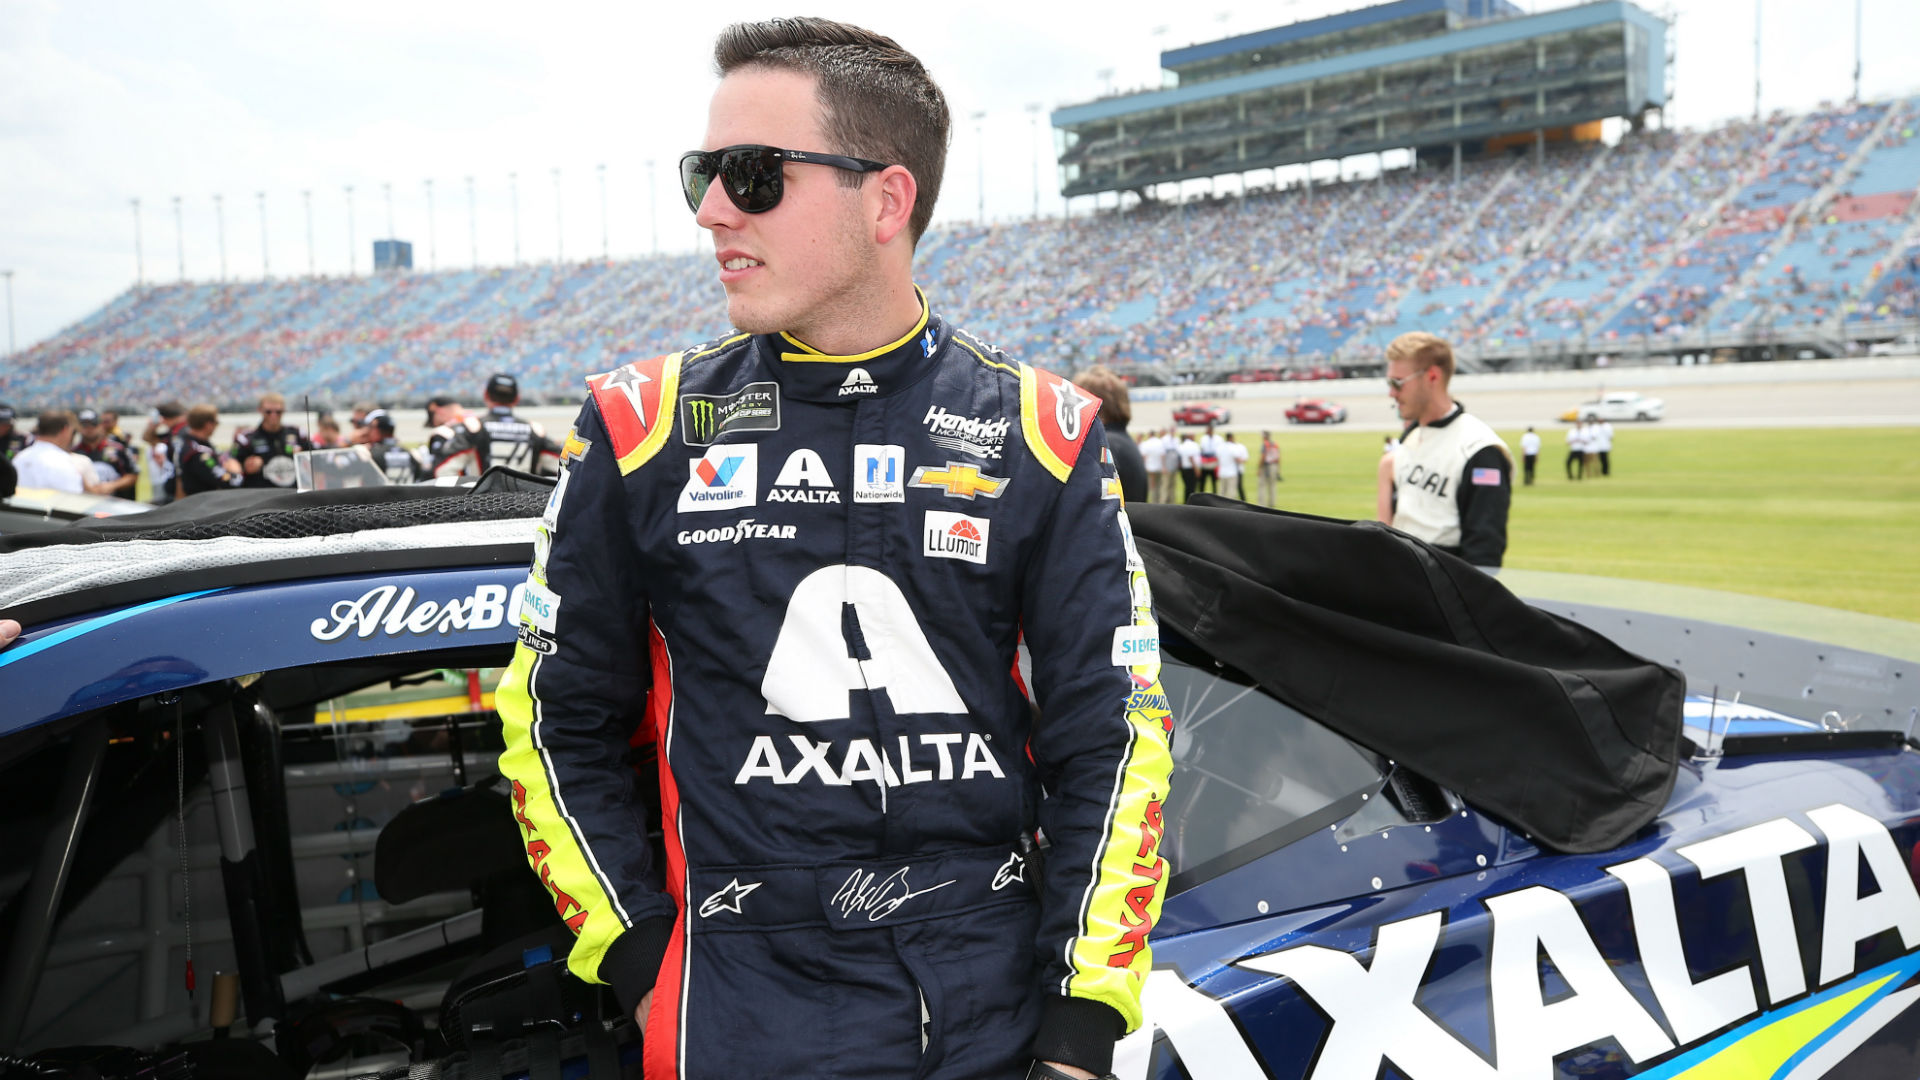 NASCAR results at Chicago: Alex Bowman gets first career Cup win